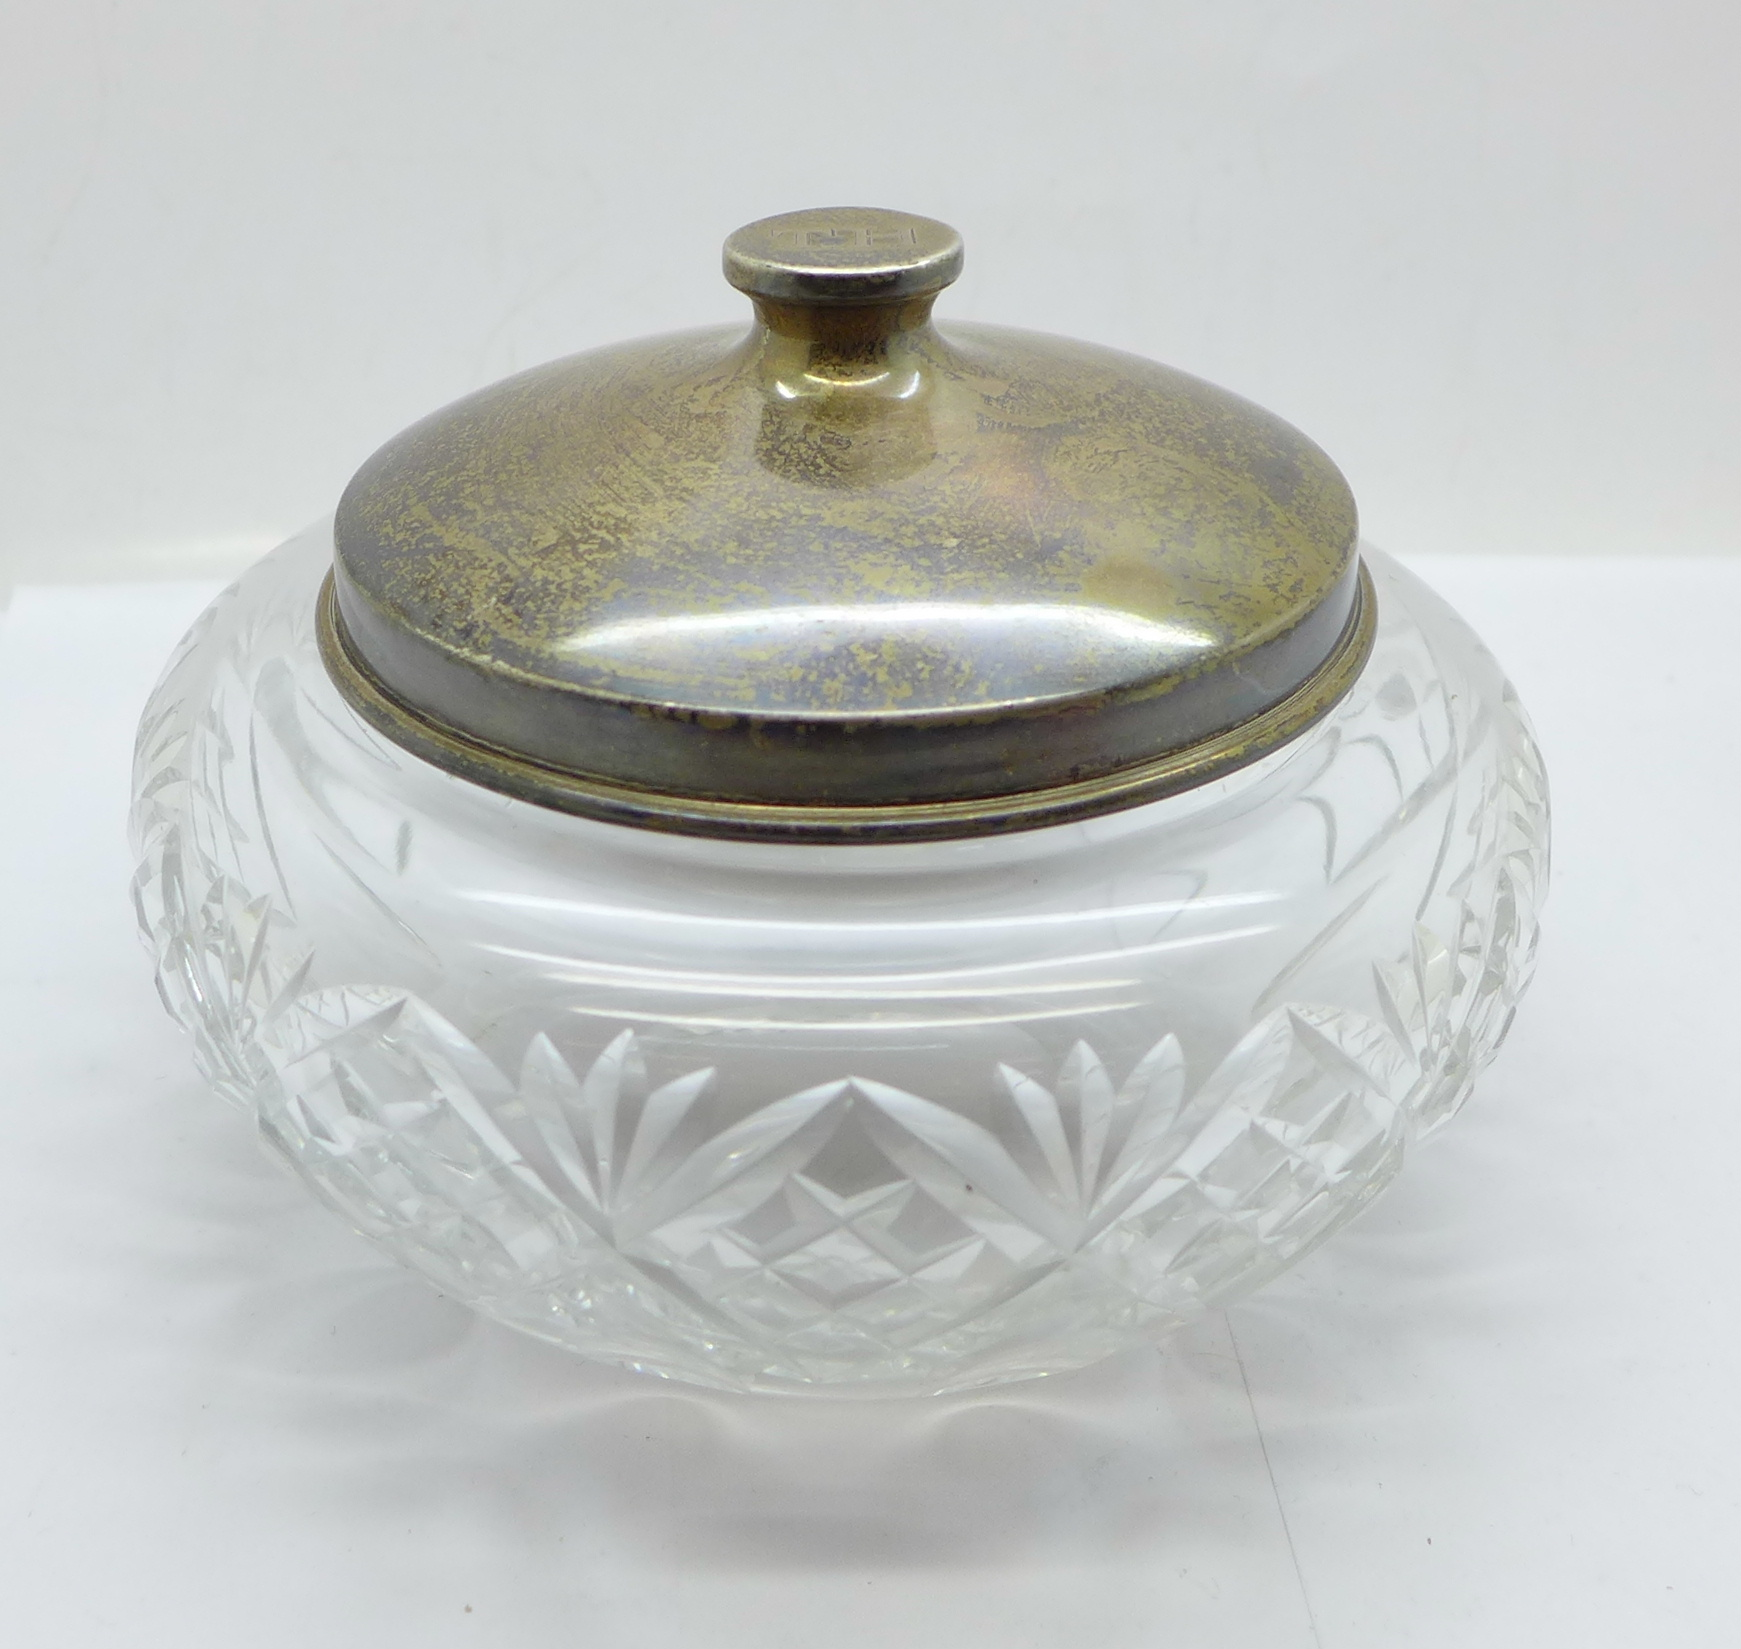 A large silver topped glass jar, the lid marked sterling silver and weighs 72g, diameter of glass